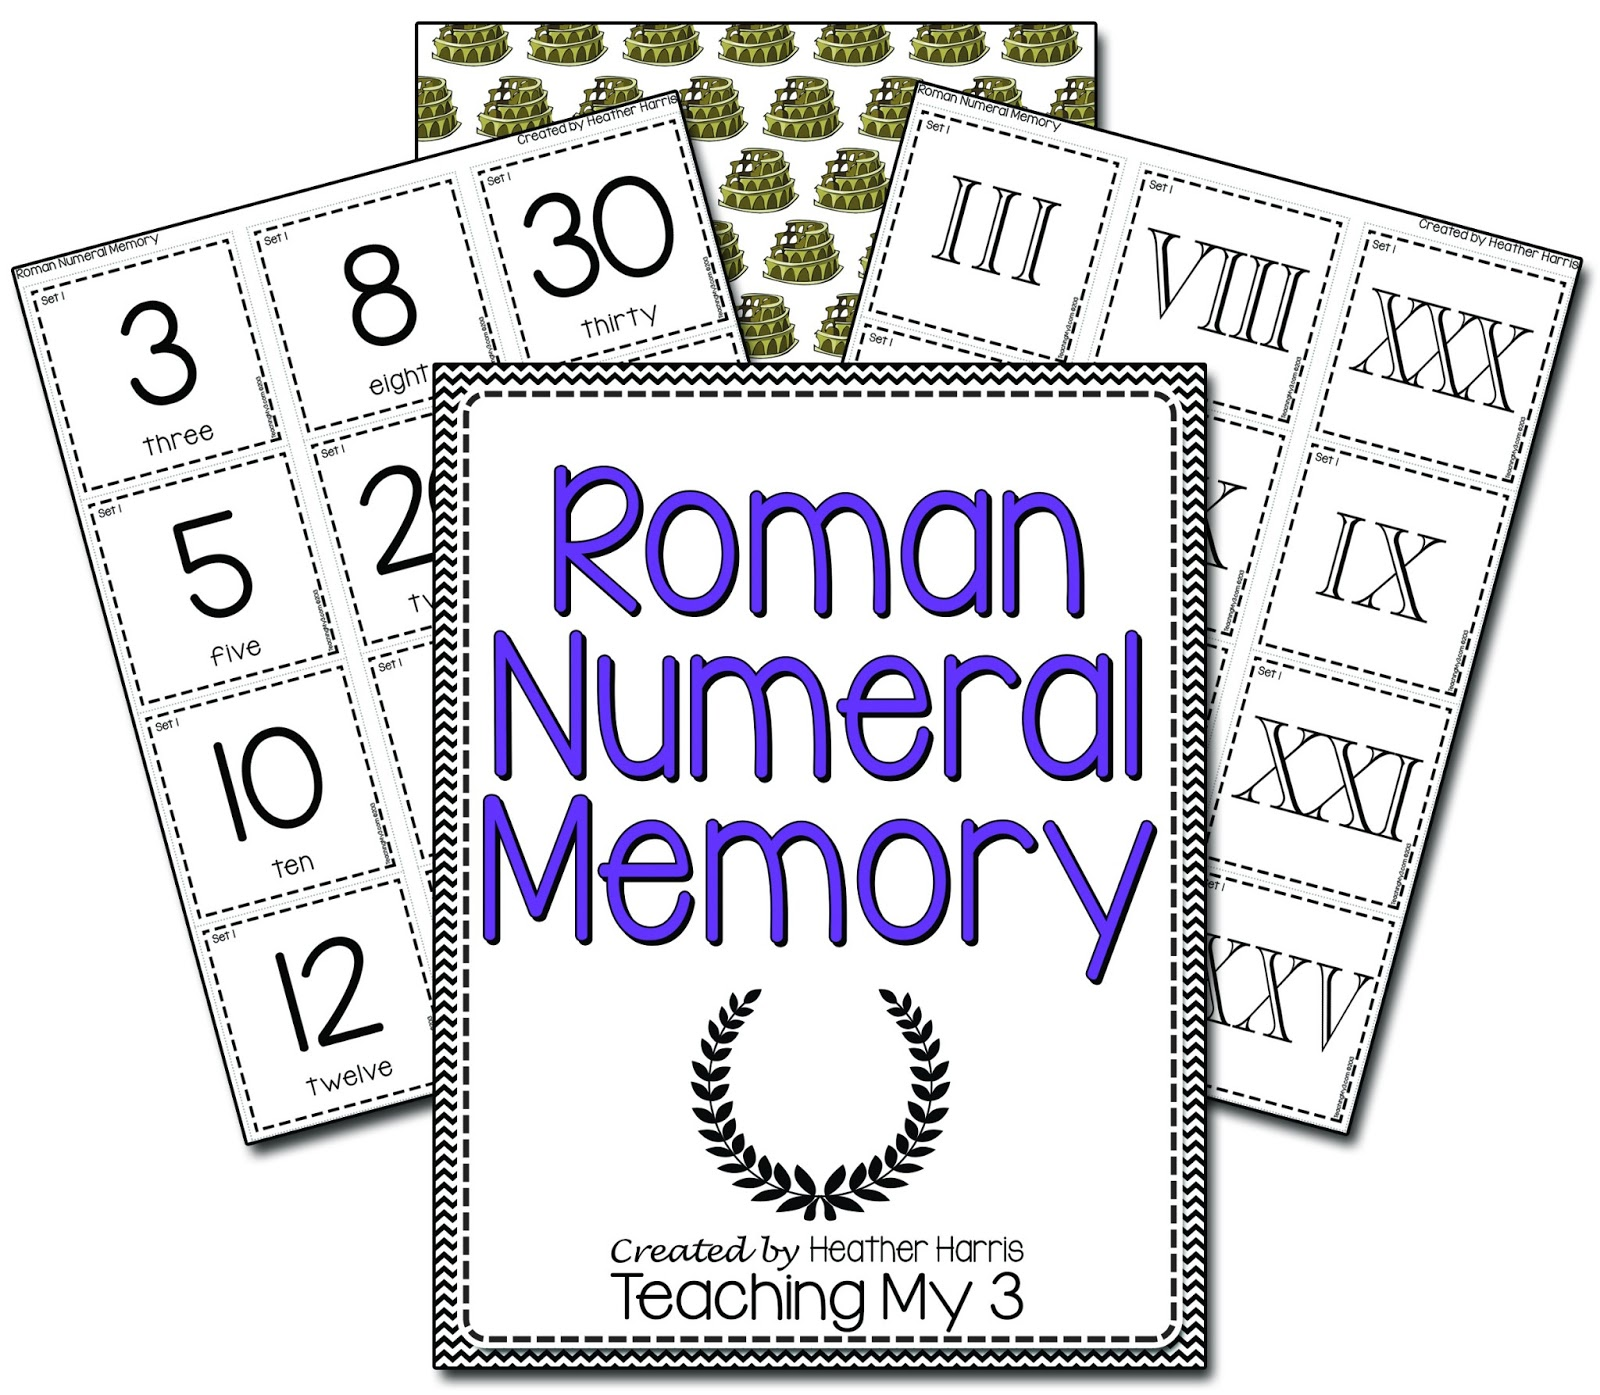 math worksheet : softschools math worksheets roman numeral  educational math  : Softschools Math Worksheets